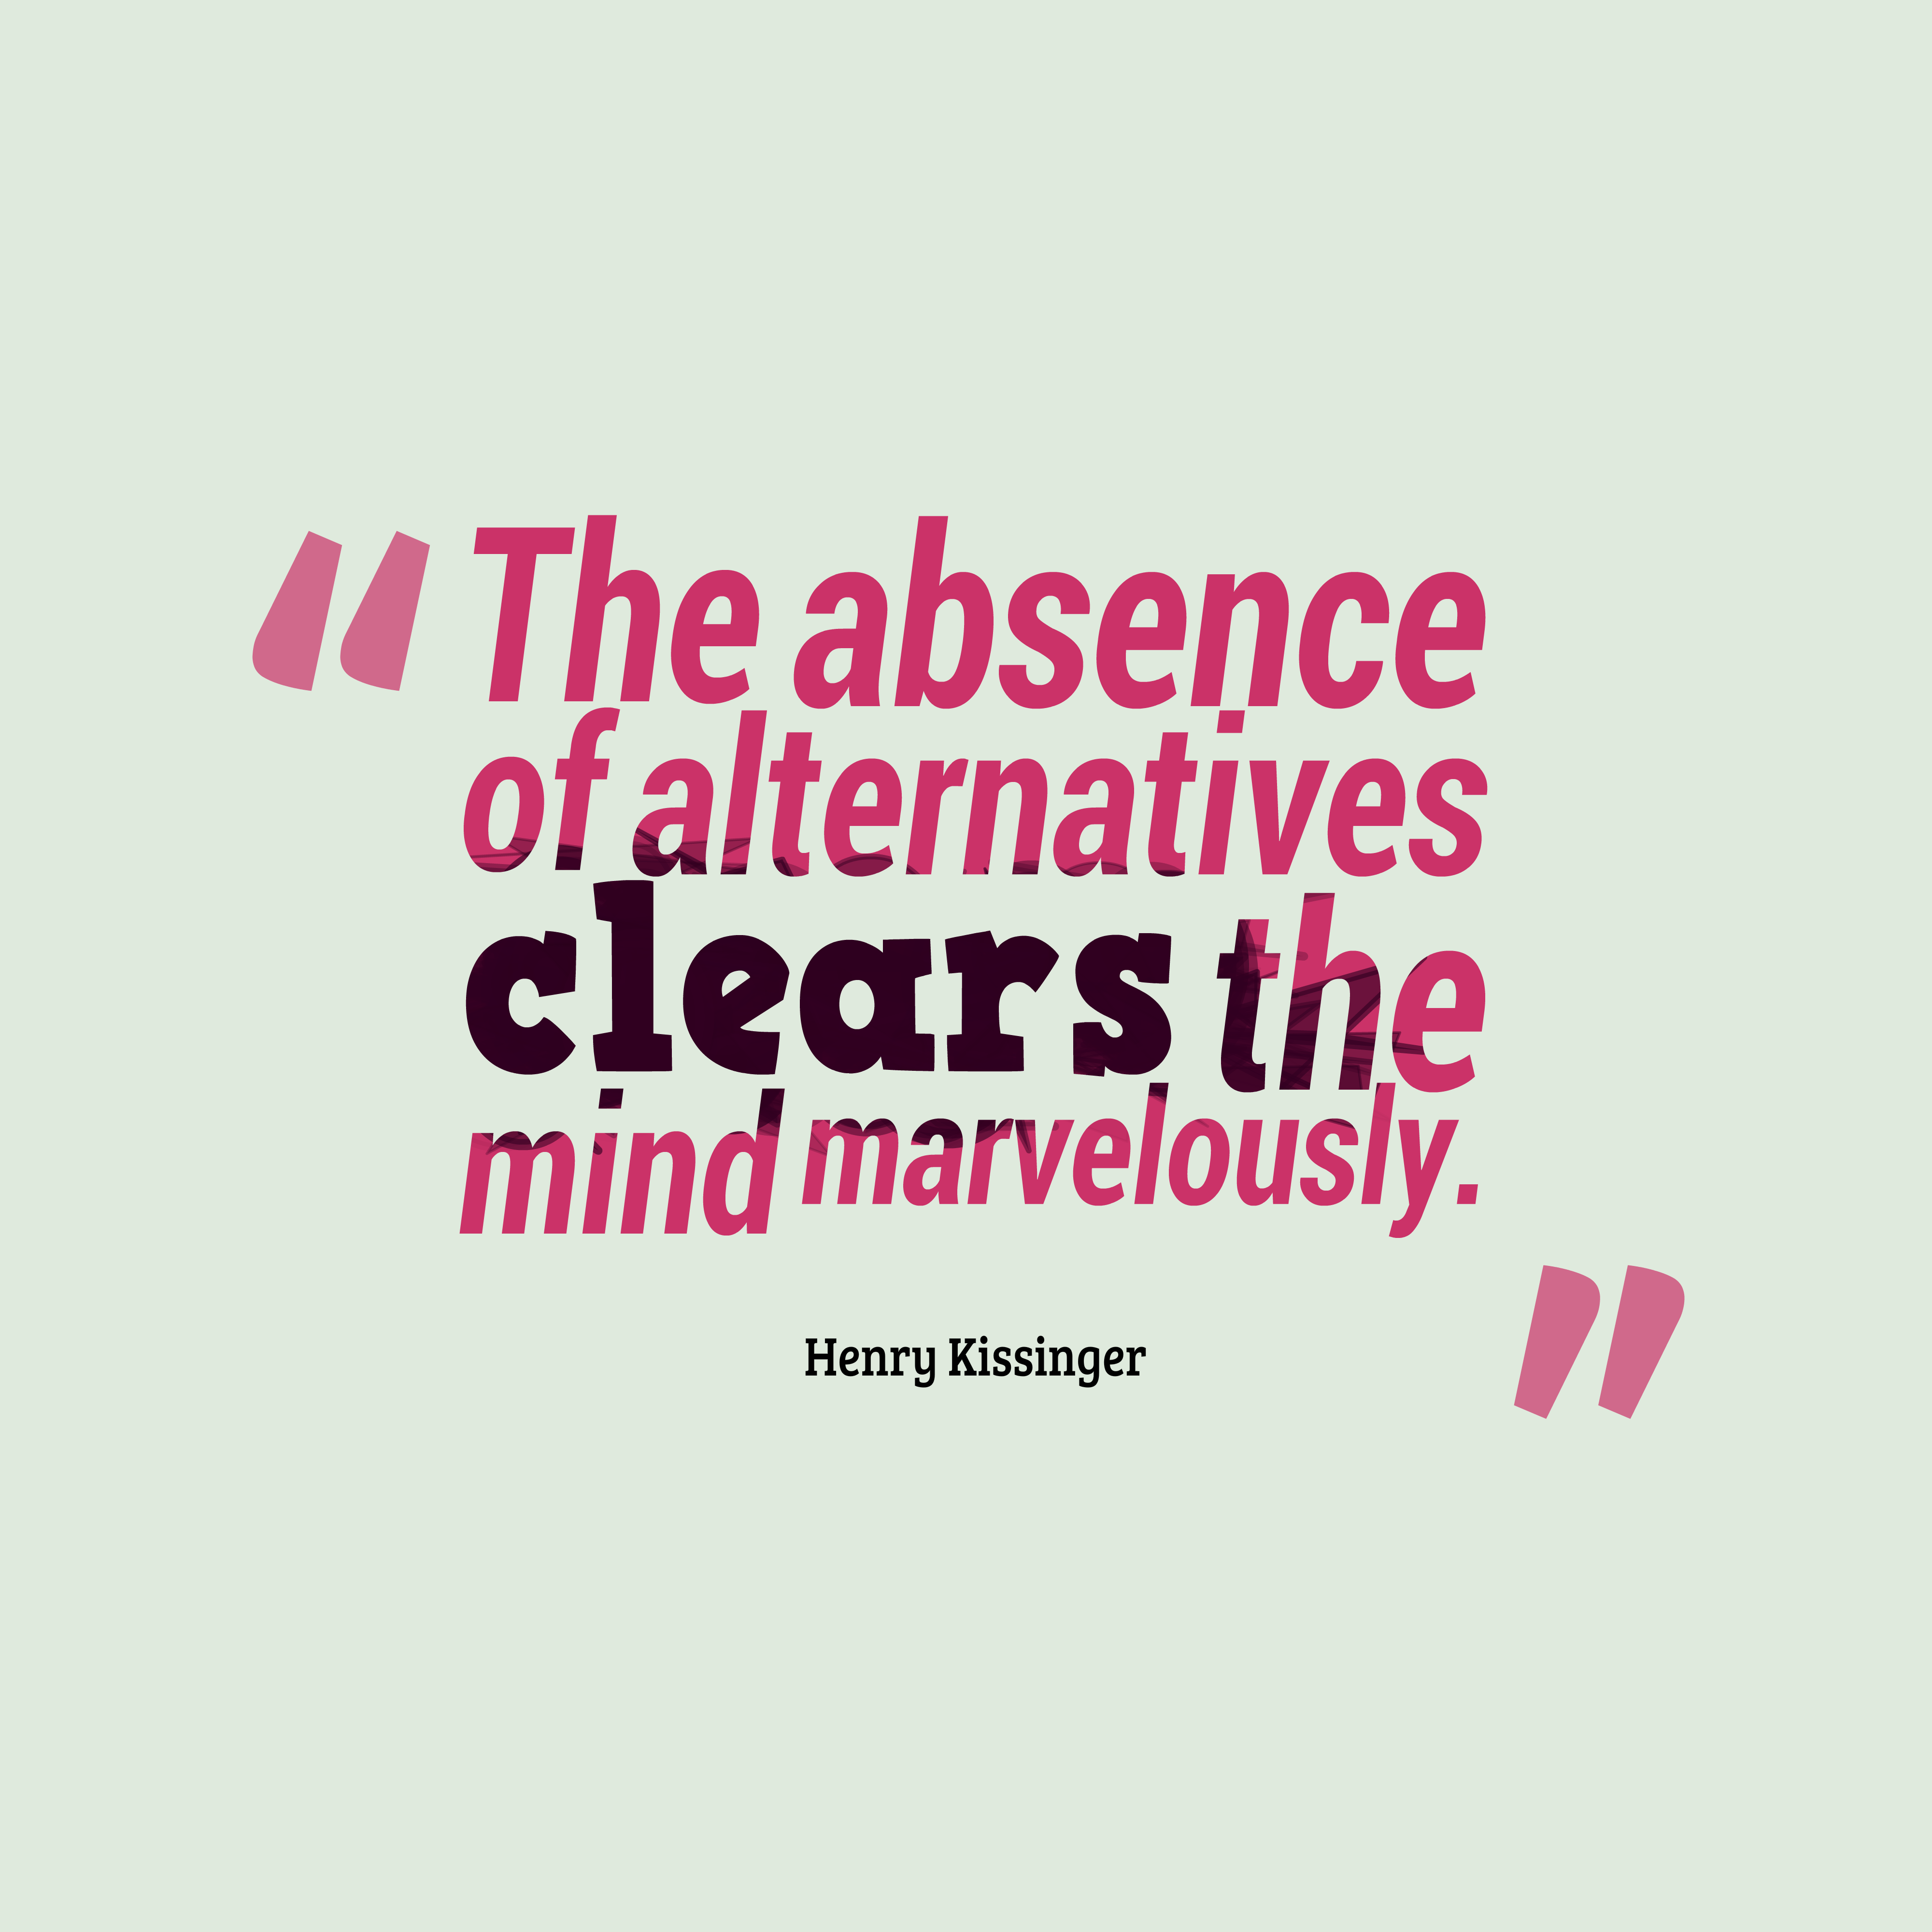 Quotes image of The absence of alternatives clears the mind marvelously.